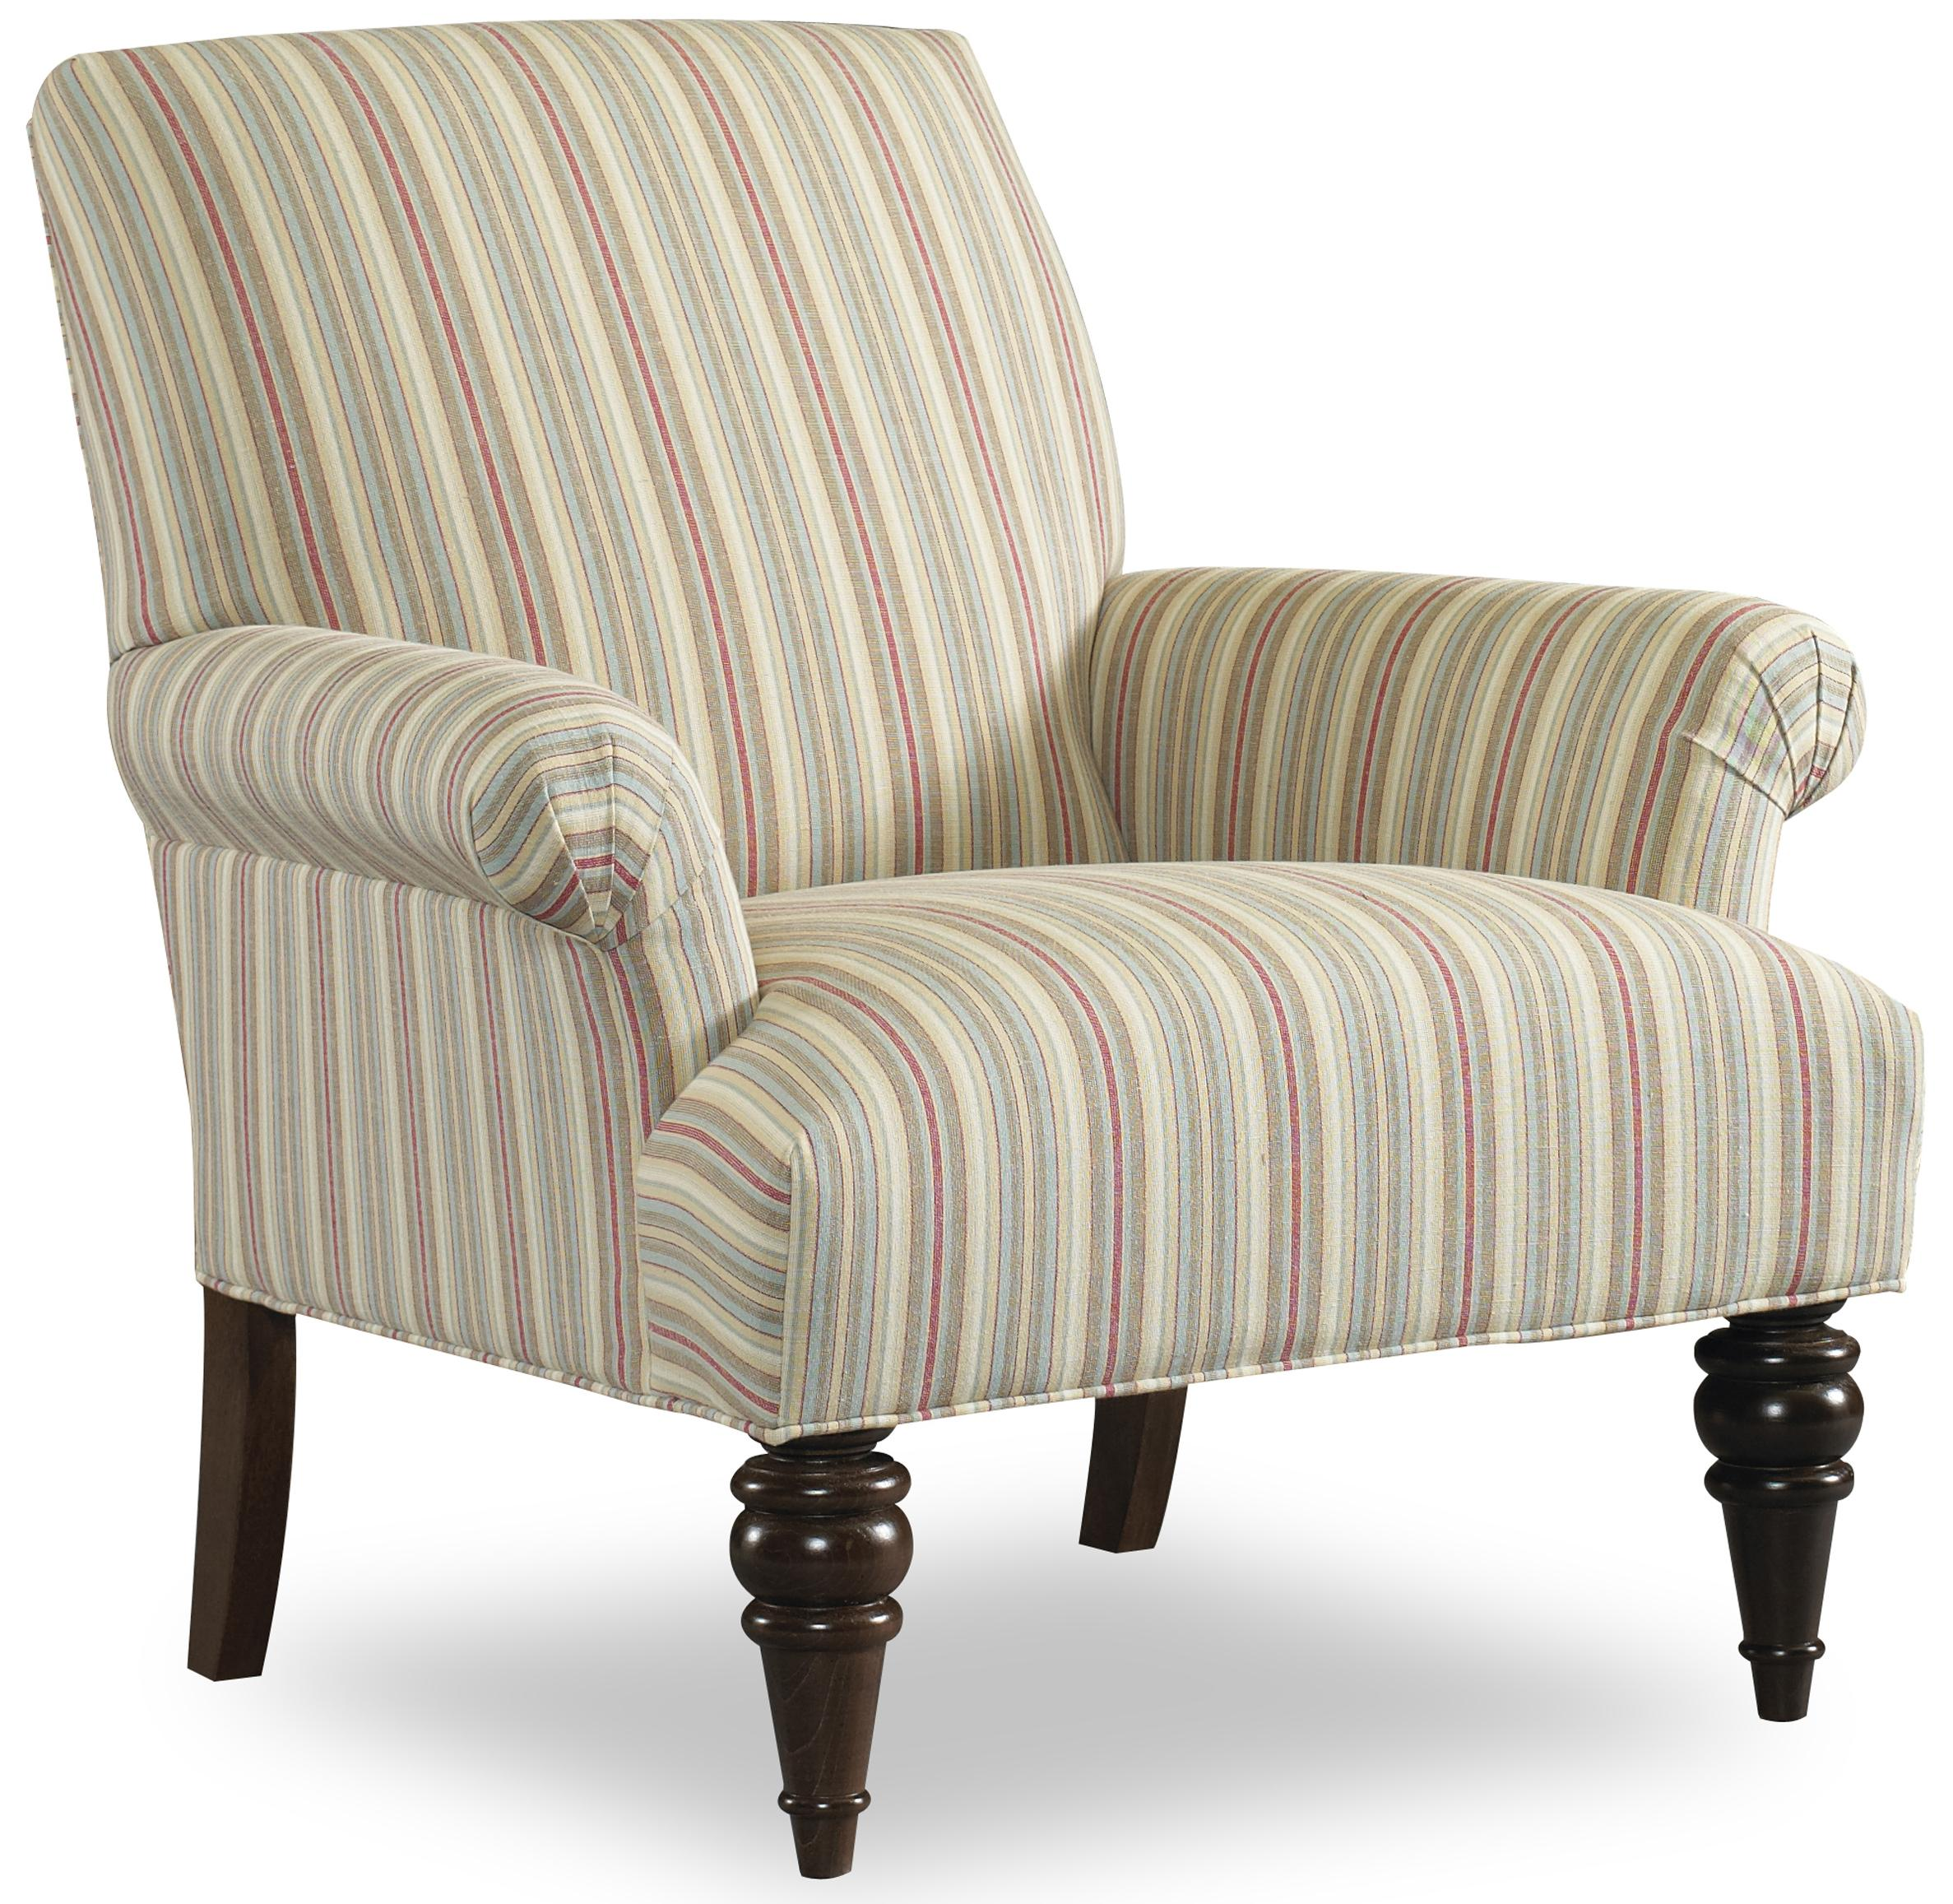 Sam Moore Luxton Upholstered Chair - Item Number: 1383.11